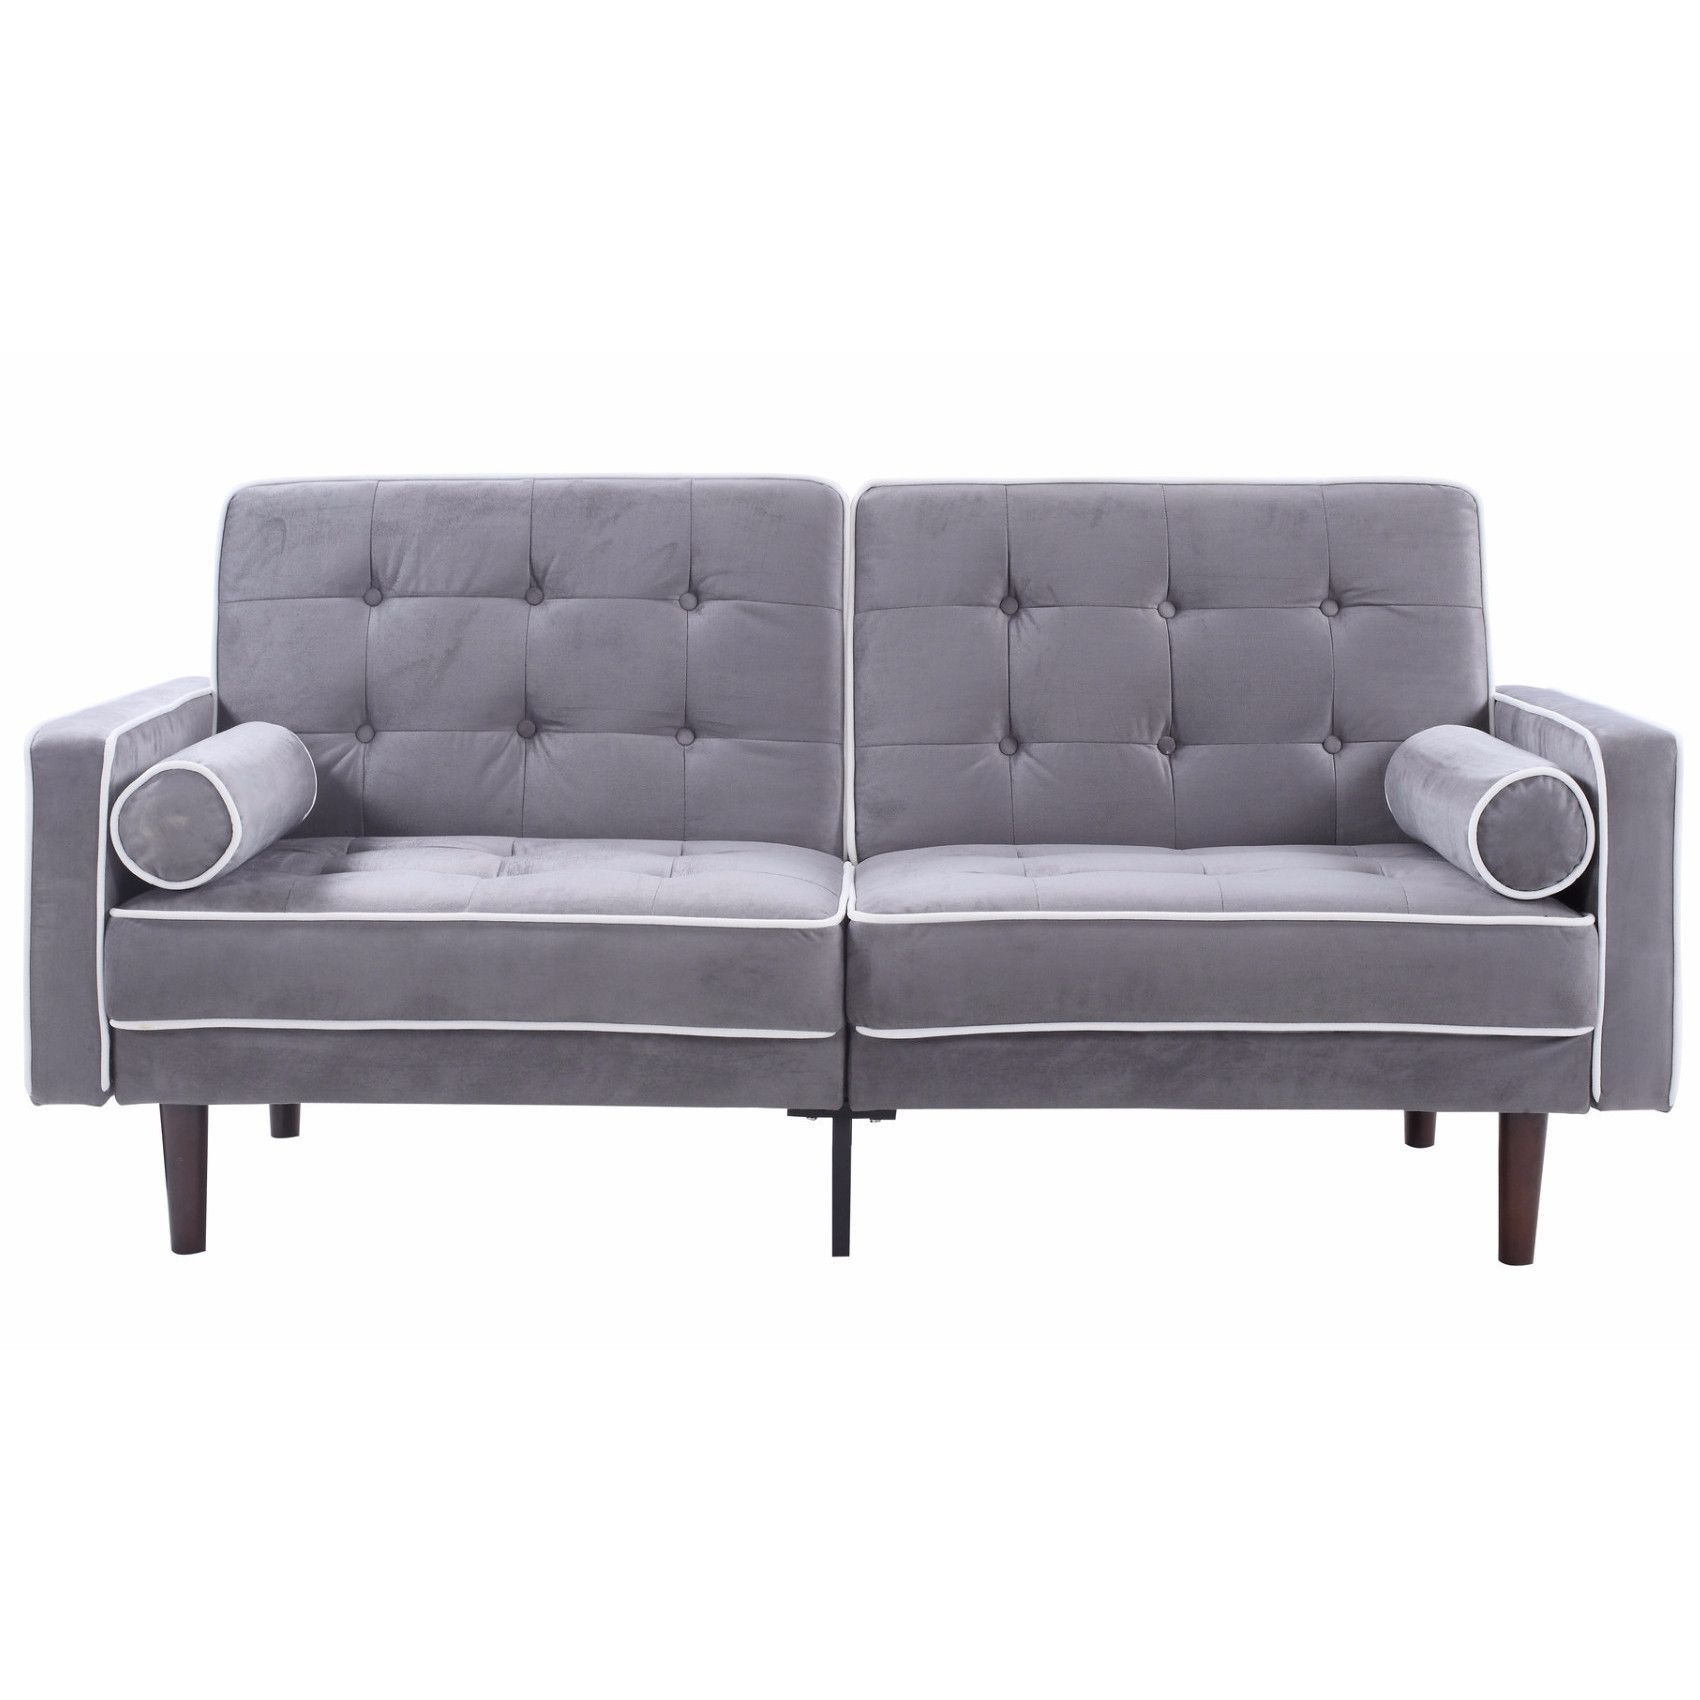 blue futons  add soft and versatile seating to your home with stylish futons  save blue futons  add soft and versatile seating to your home with      rh   pinterest